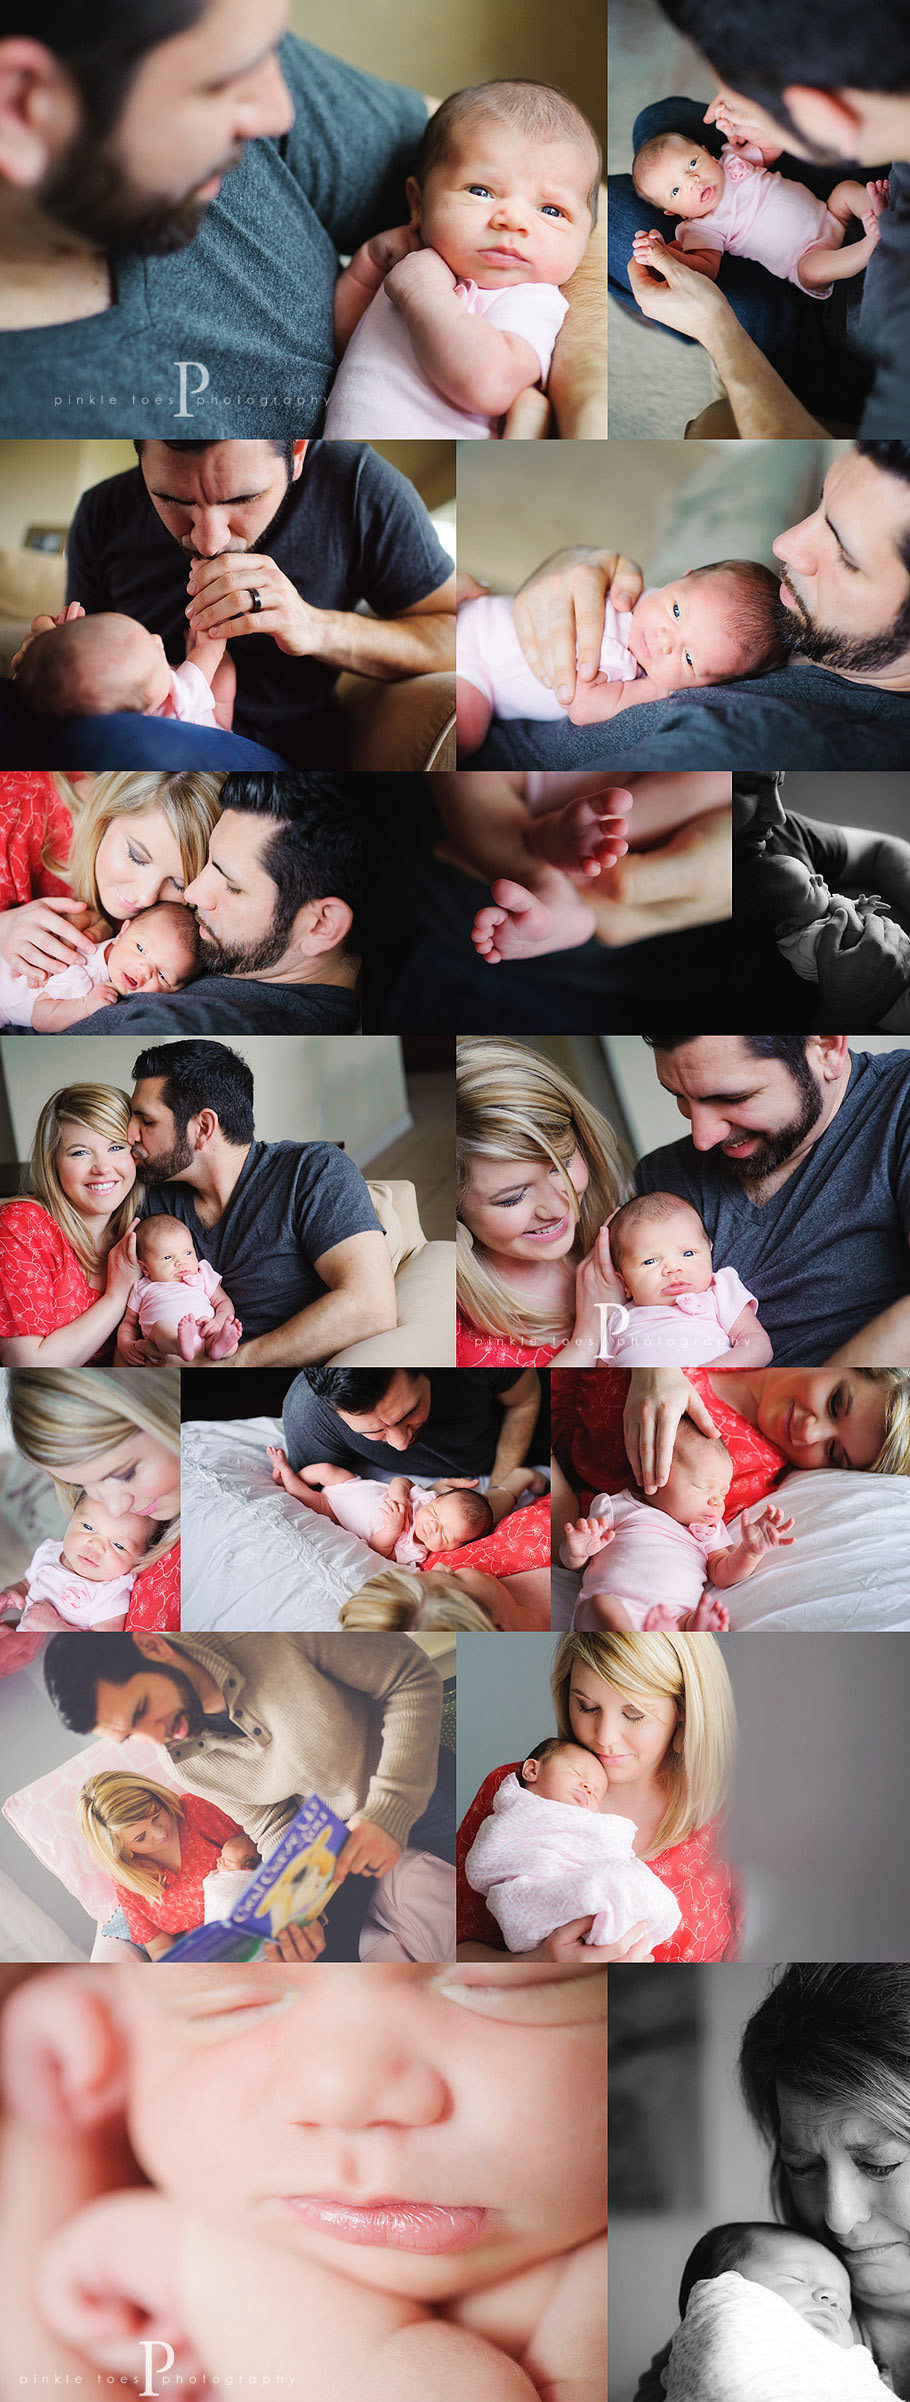 ap-austin-newborn-lifestyle-photographer.jpg